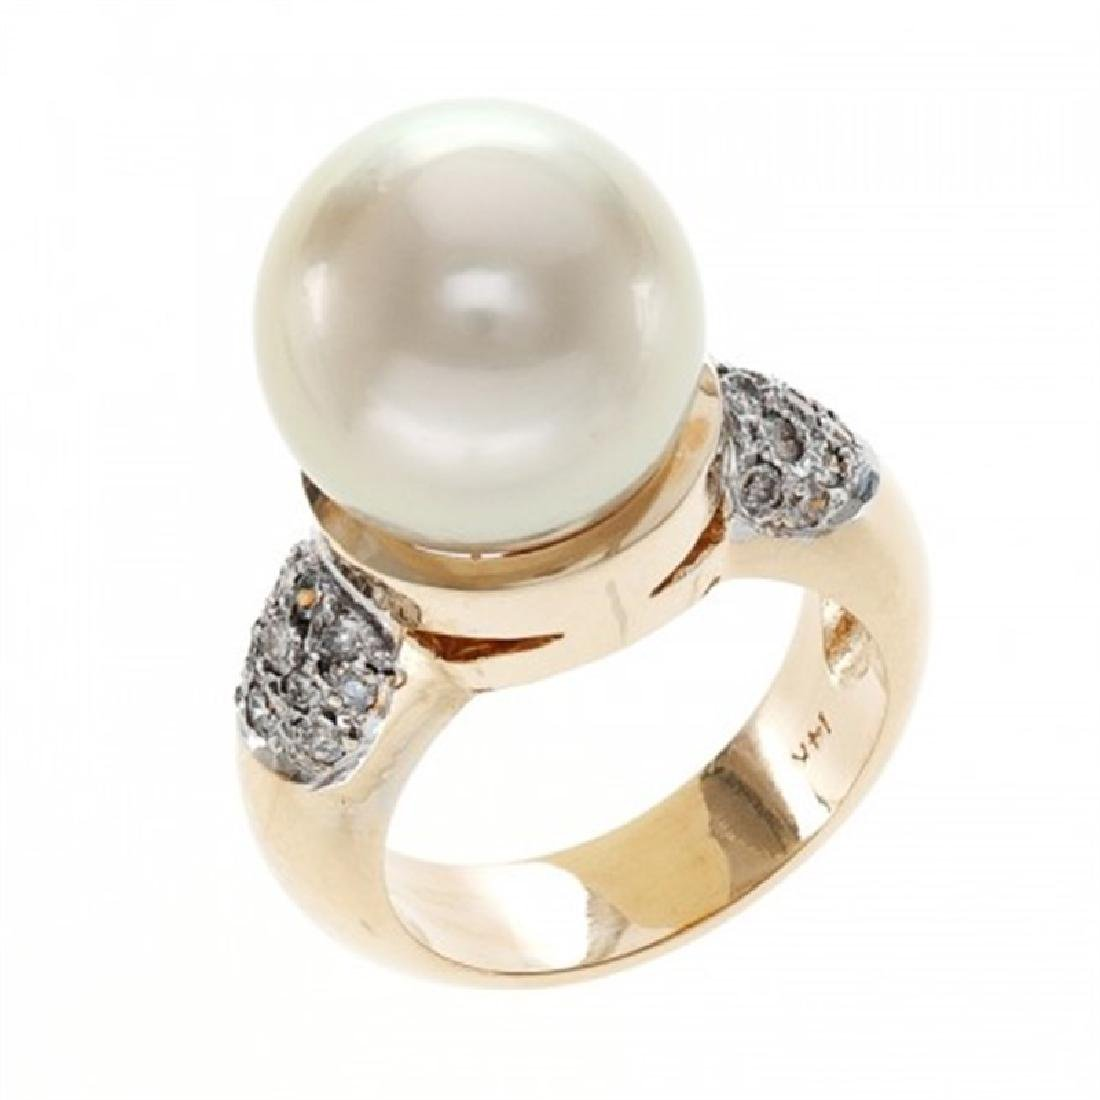 14.0-14.5mm Golden South Sea Pearl Ring with Diamonds